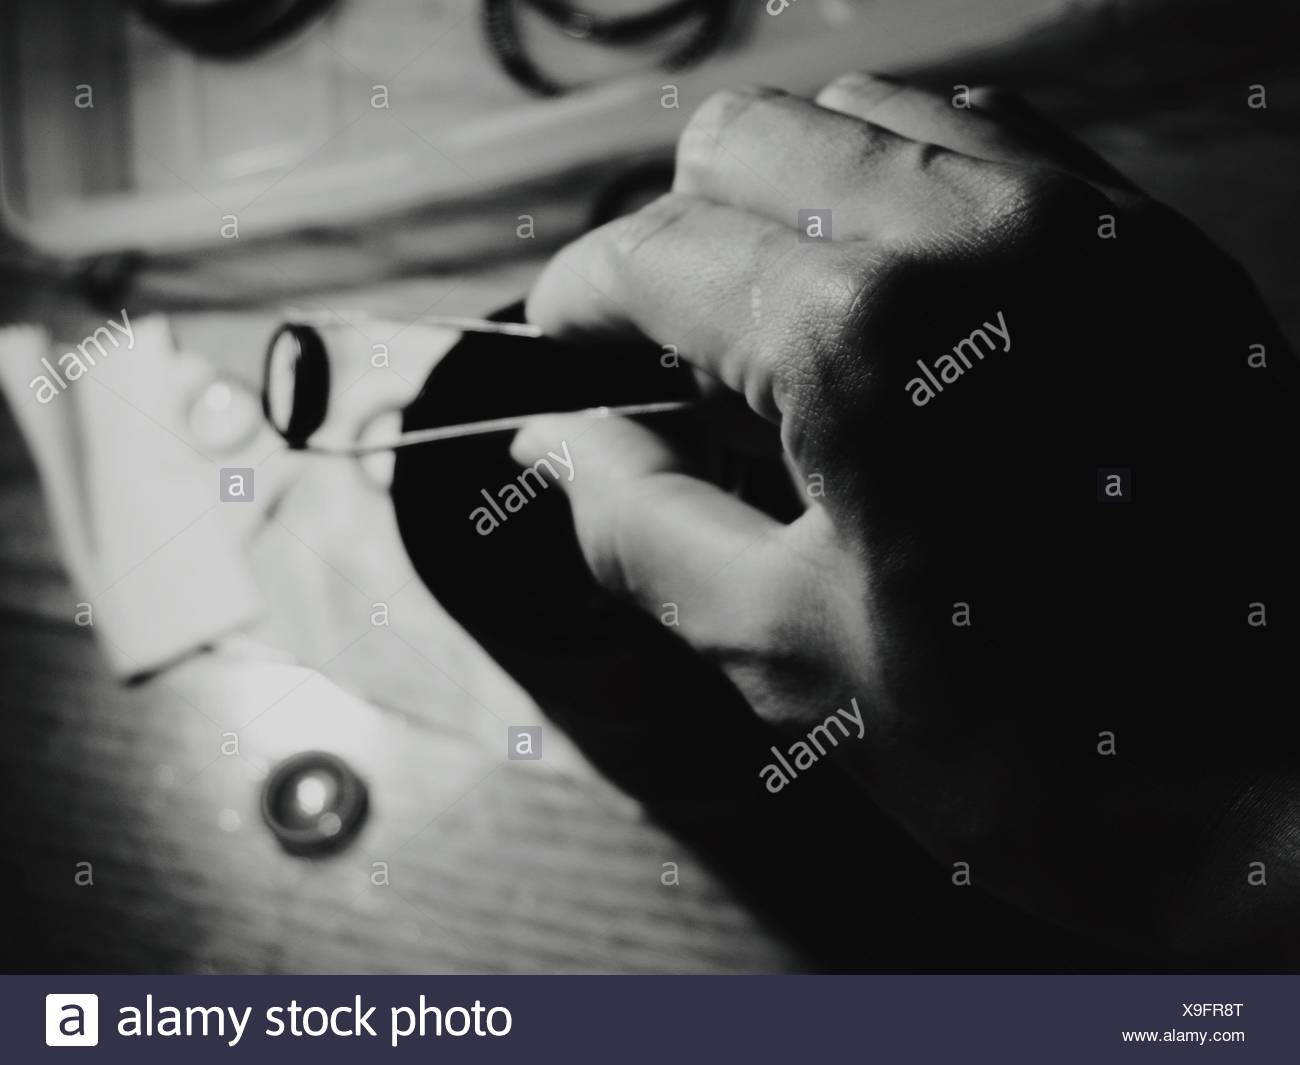 Cropped Hand Holding Button With Tongs - Stock Image